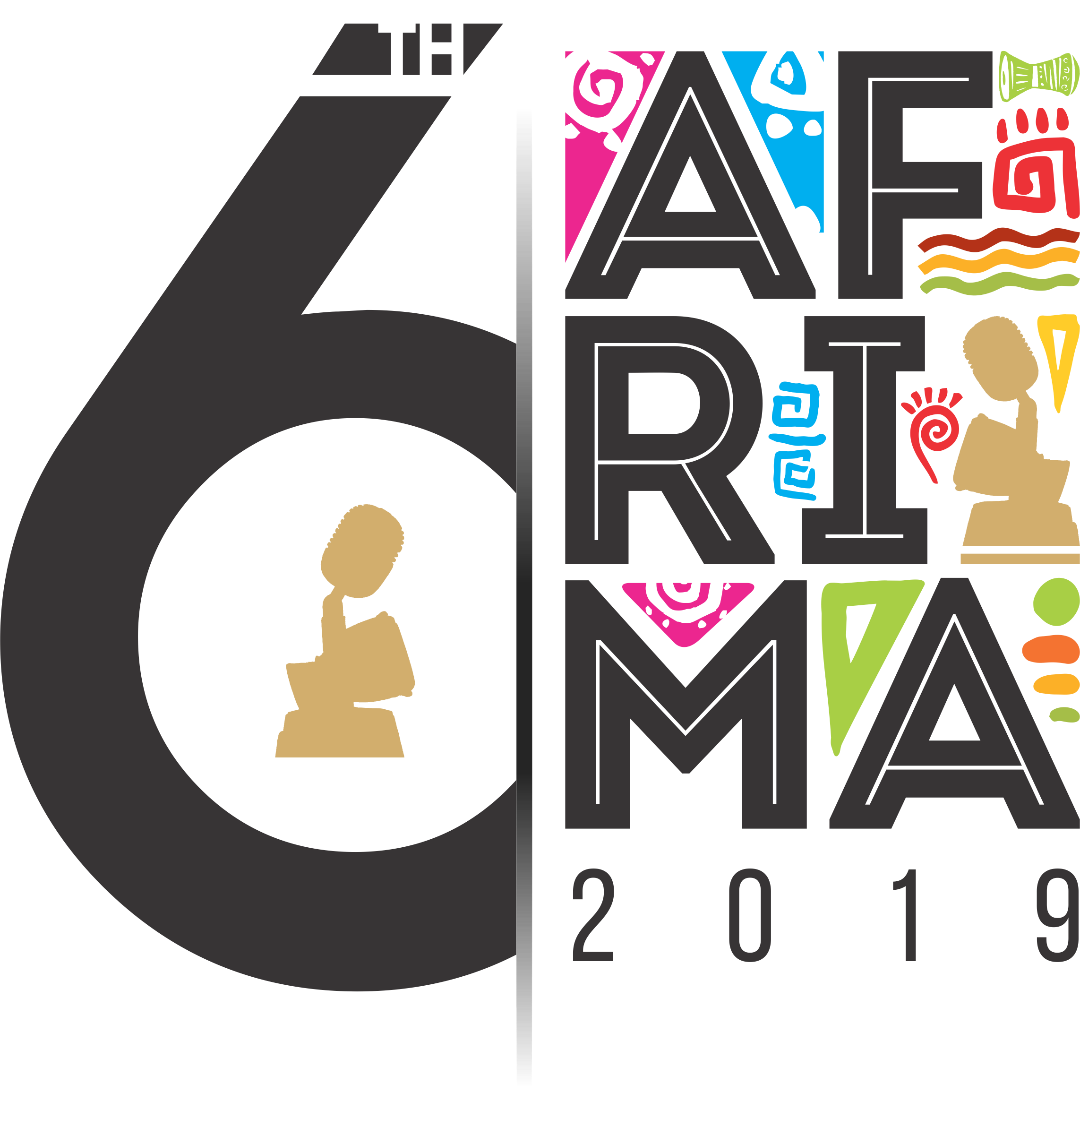 AFRIMA unveils exciting events to round off 2019